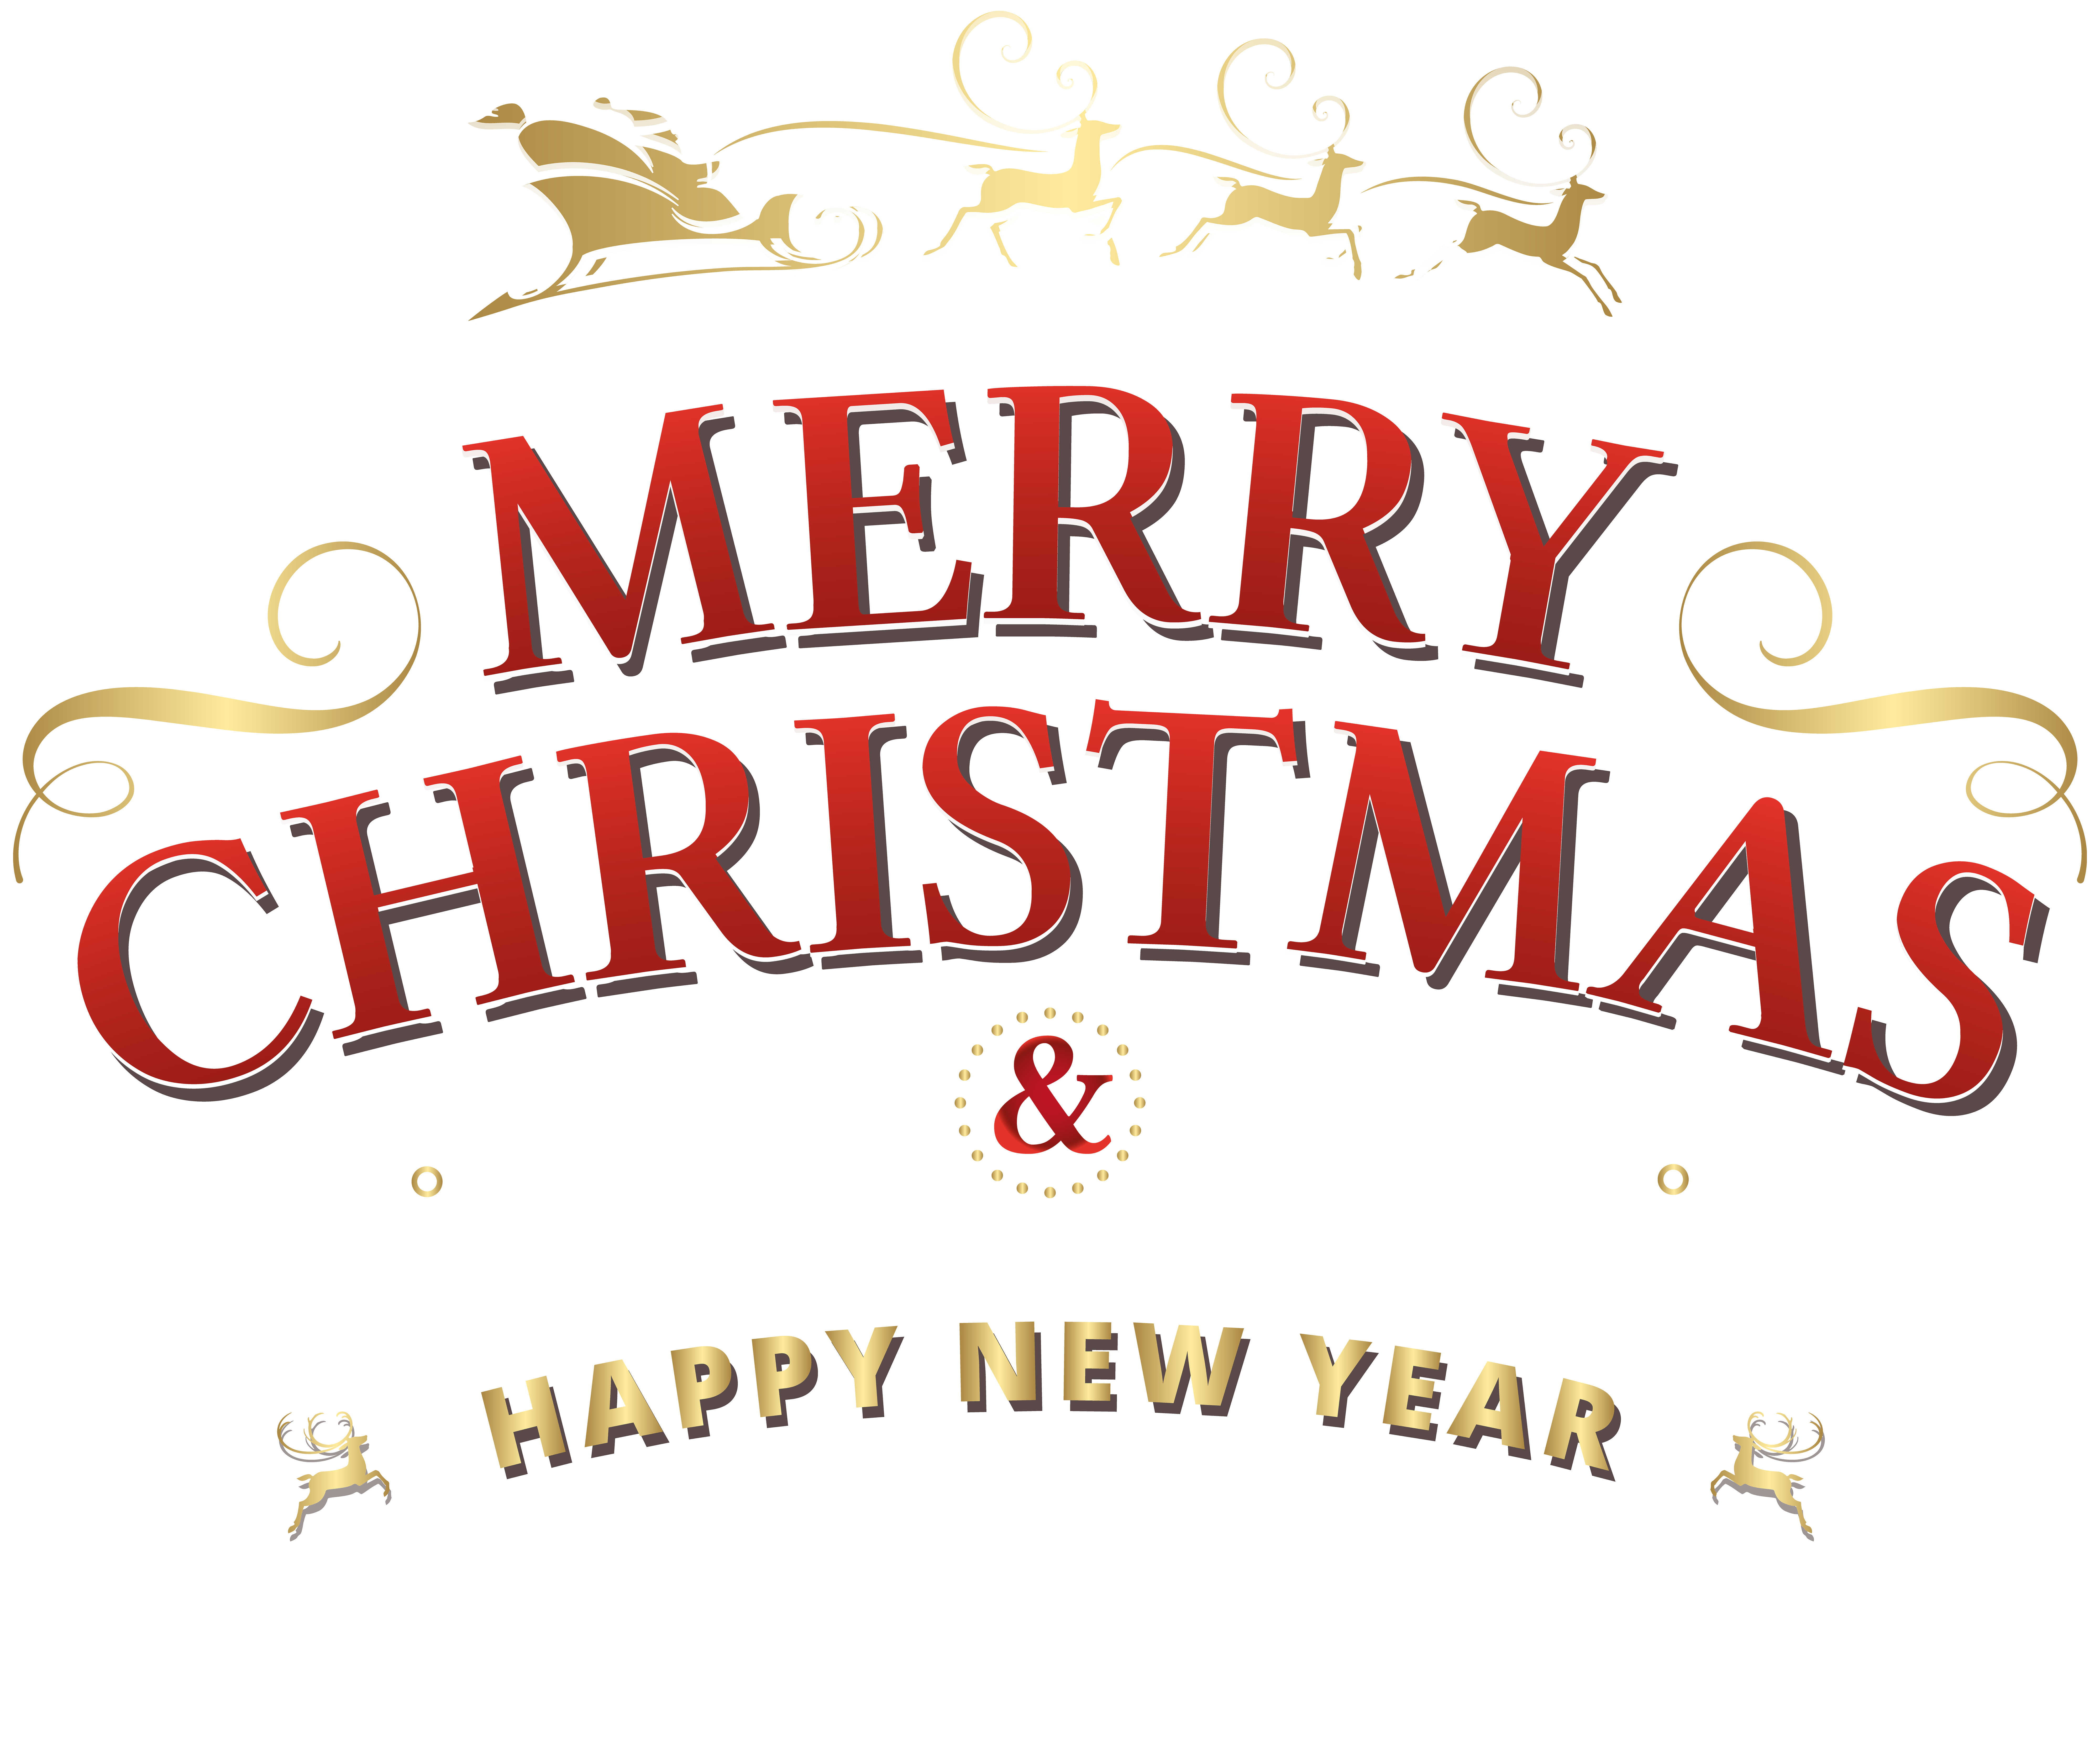 Free clipart merry christmas graphic royalty free library Merry Christmas Text PNG Clip Art | Gallery Yopriceville - High ... graphic royalty free library